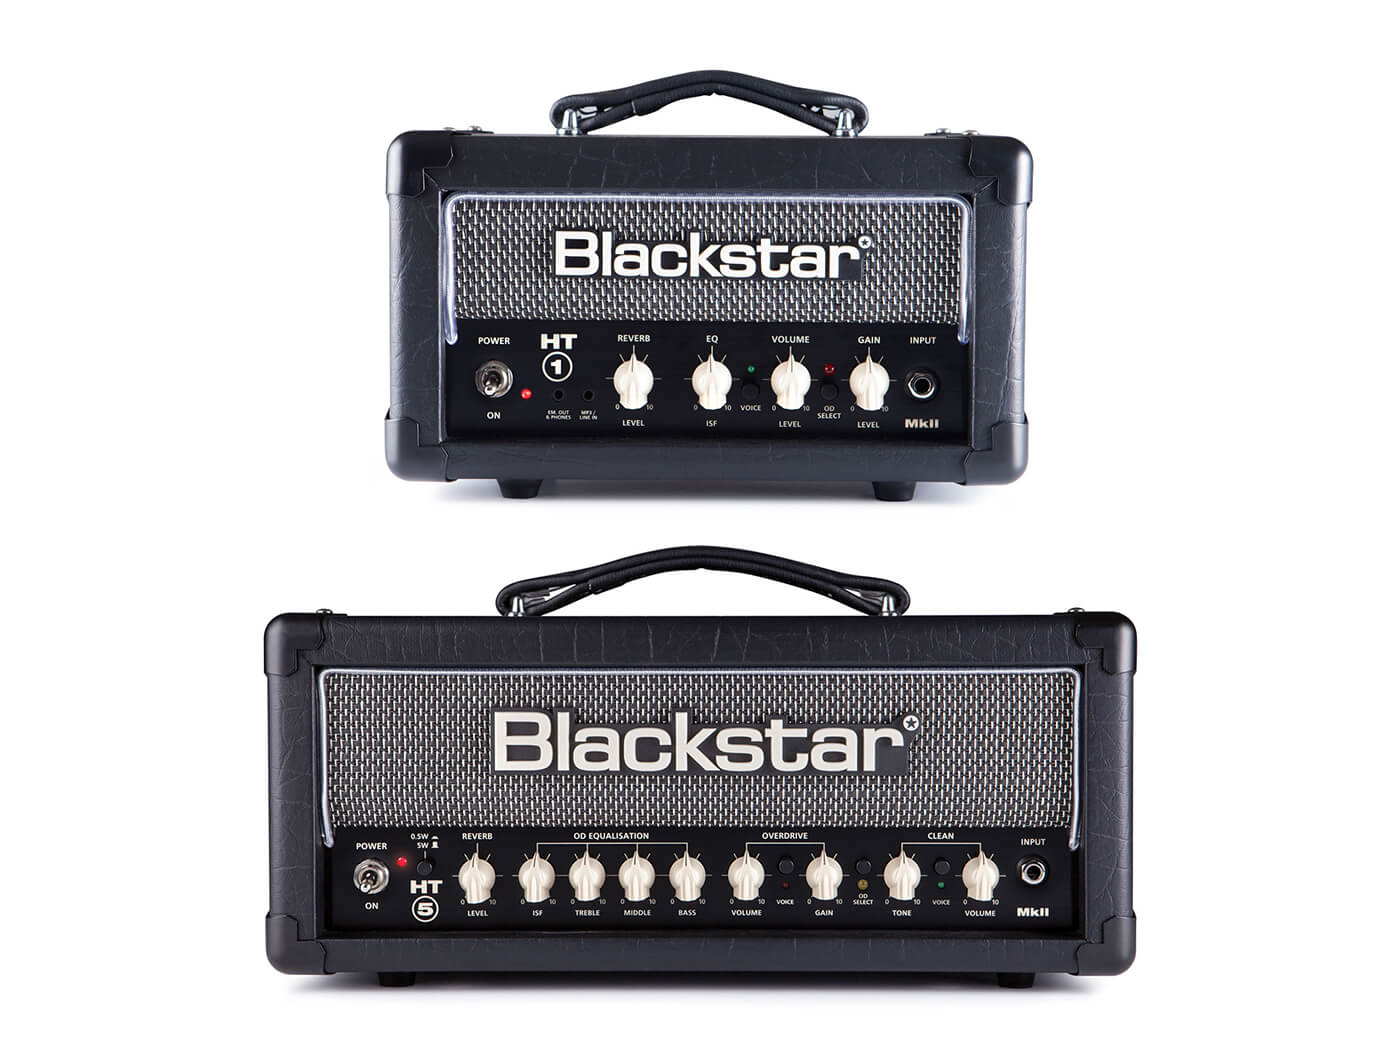 namm 2019 blackstar launches ht 1r mkii ht 5r mkii amps. Black Bedroom Furniture Sets. Home Design Ideas